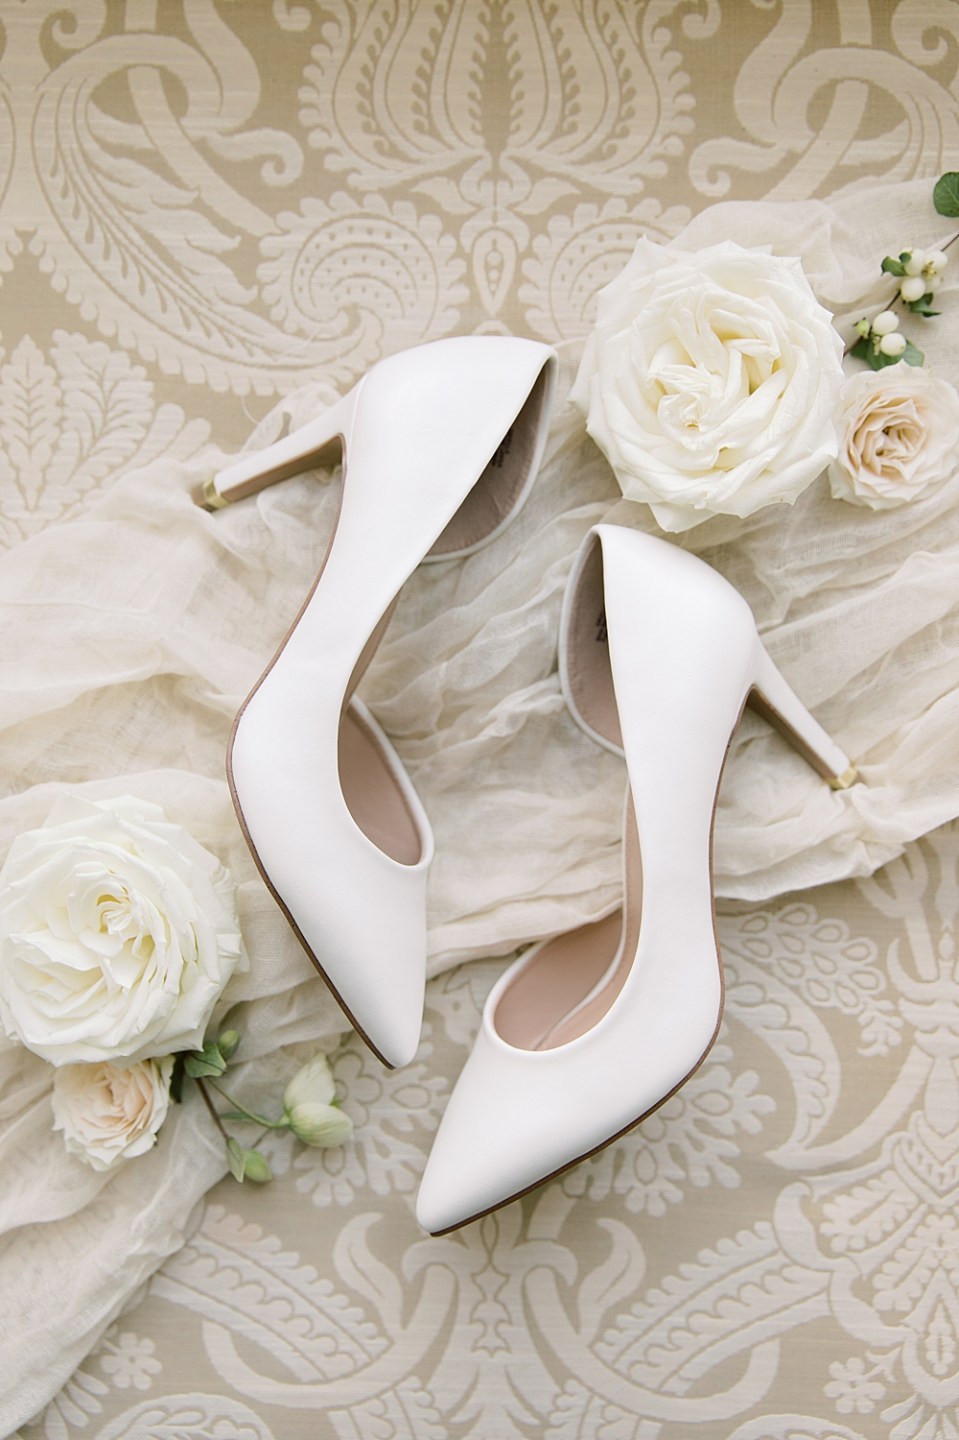 Wedding Details | Ashford Estate Wedding Photography | Sarah Canning Photography